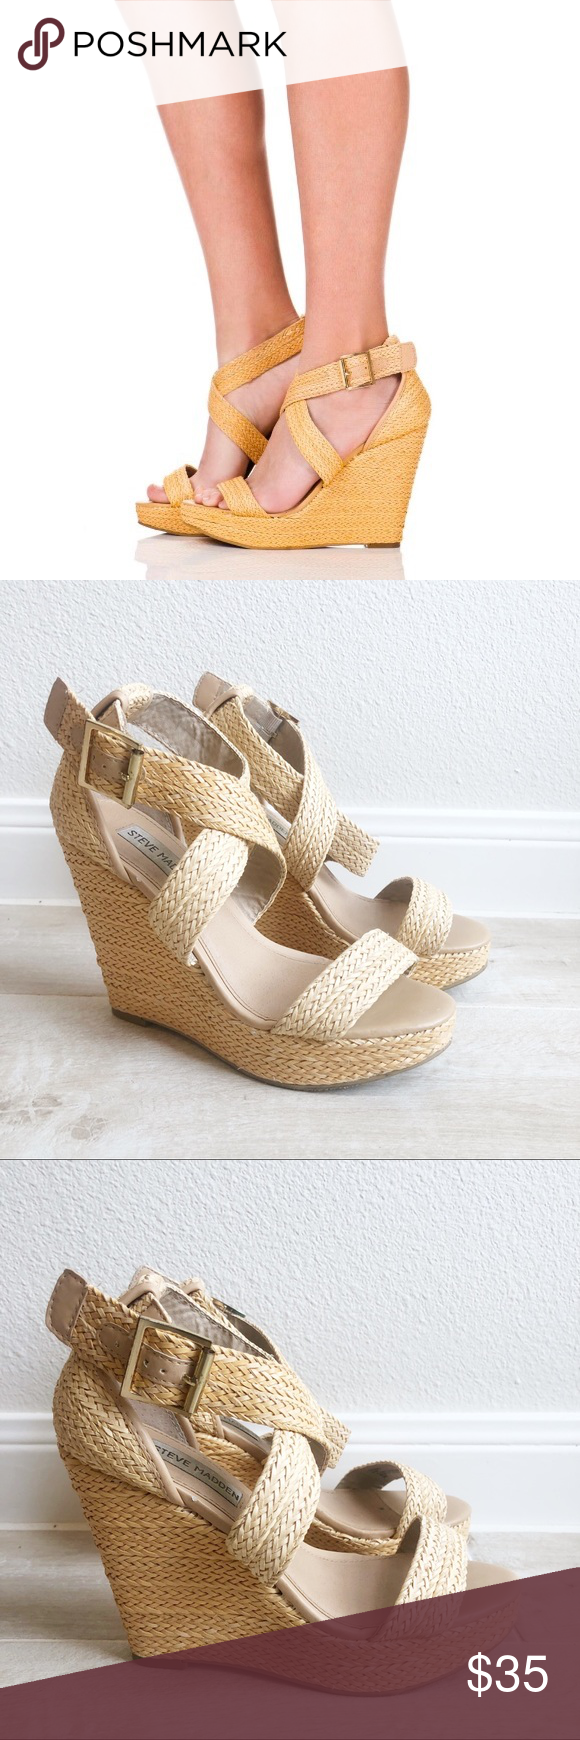 e81ca7d43ab Steve Madden Haywire Woven Wedge Sandals Distressed faux leather is woven  to create the look of